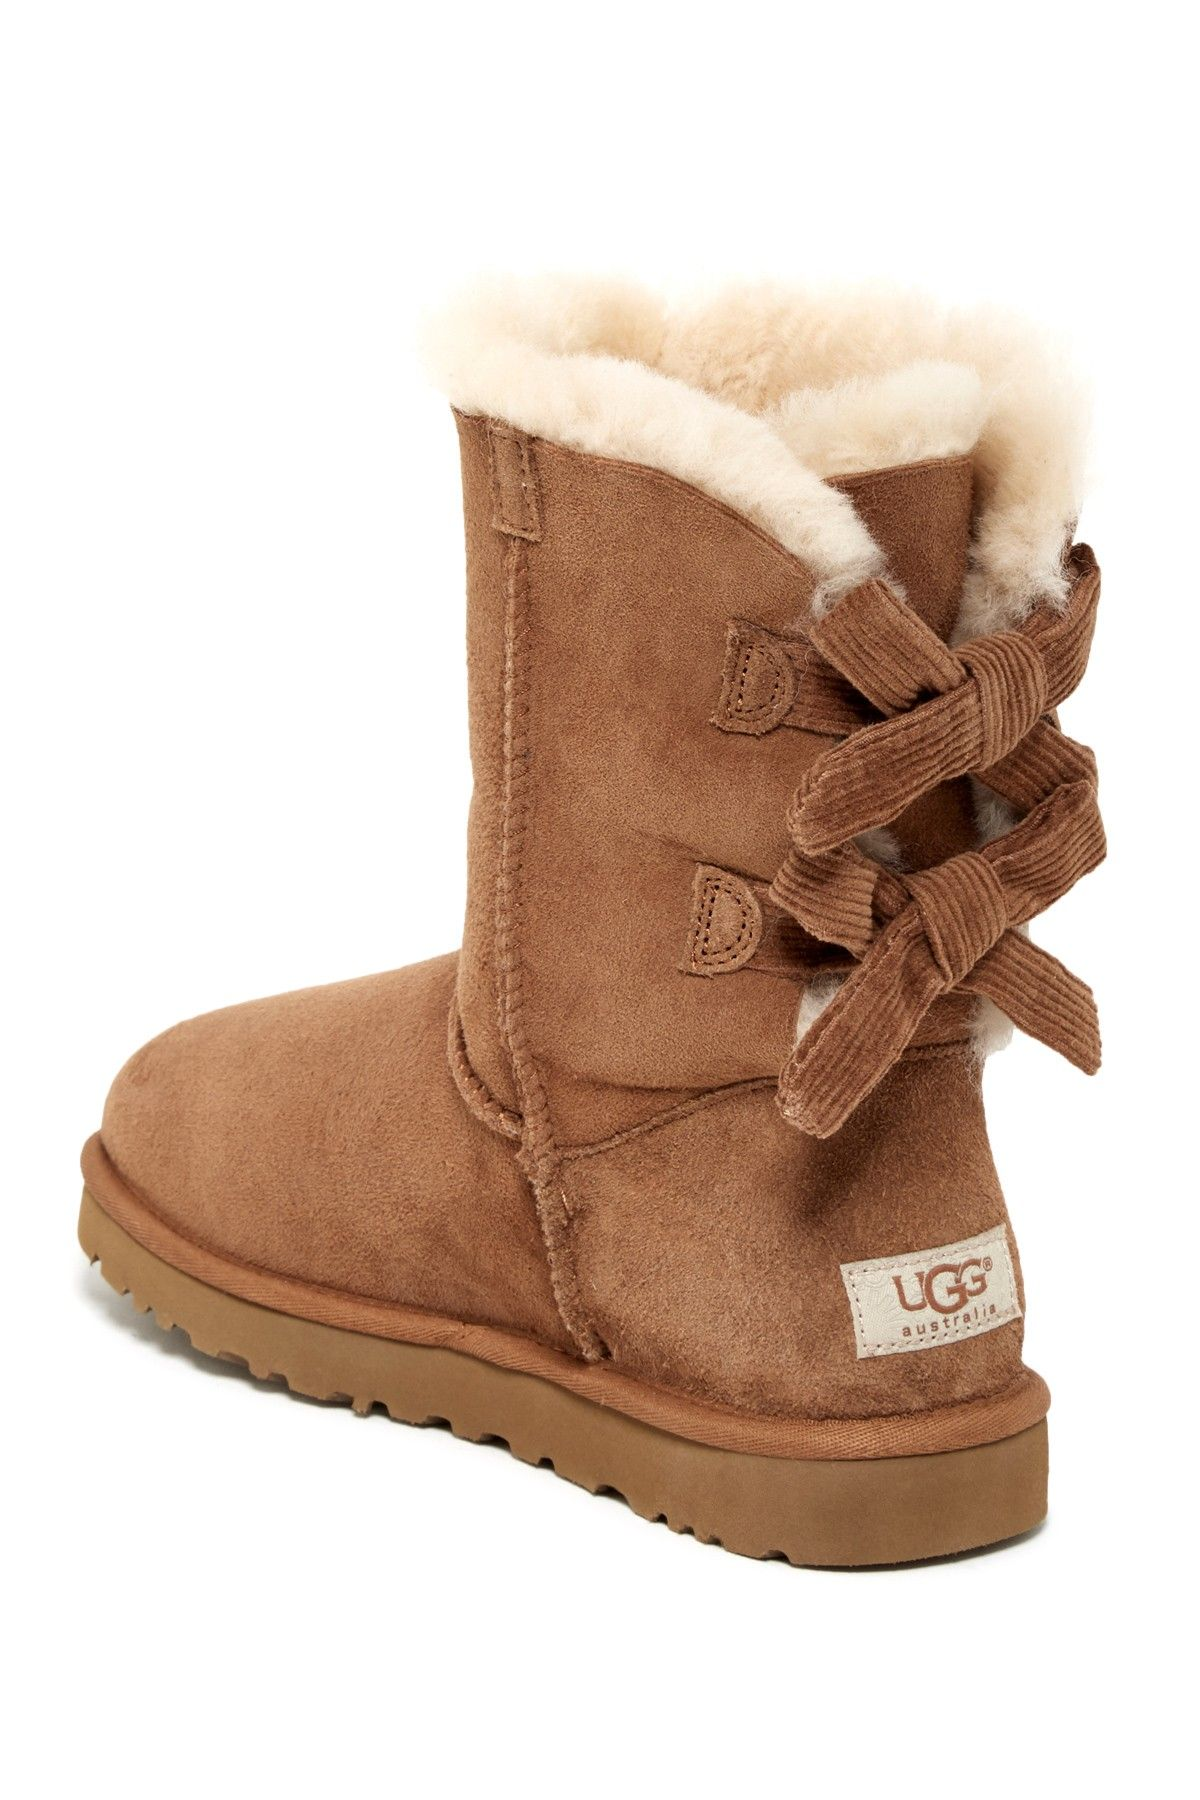 ugg australia baily bow corduroy genuine shearling fur boot nordstrom rack sponsored by. Black Bedroom Furniture Sets. Home Design Ideas